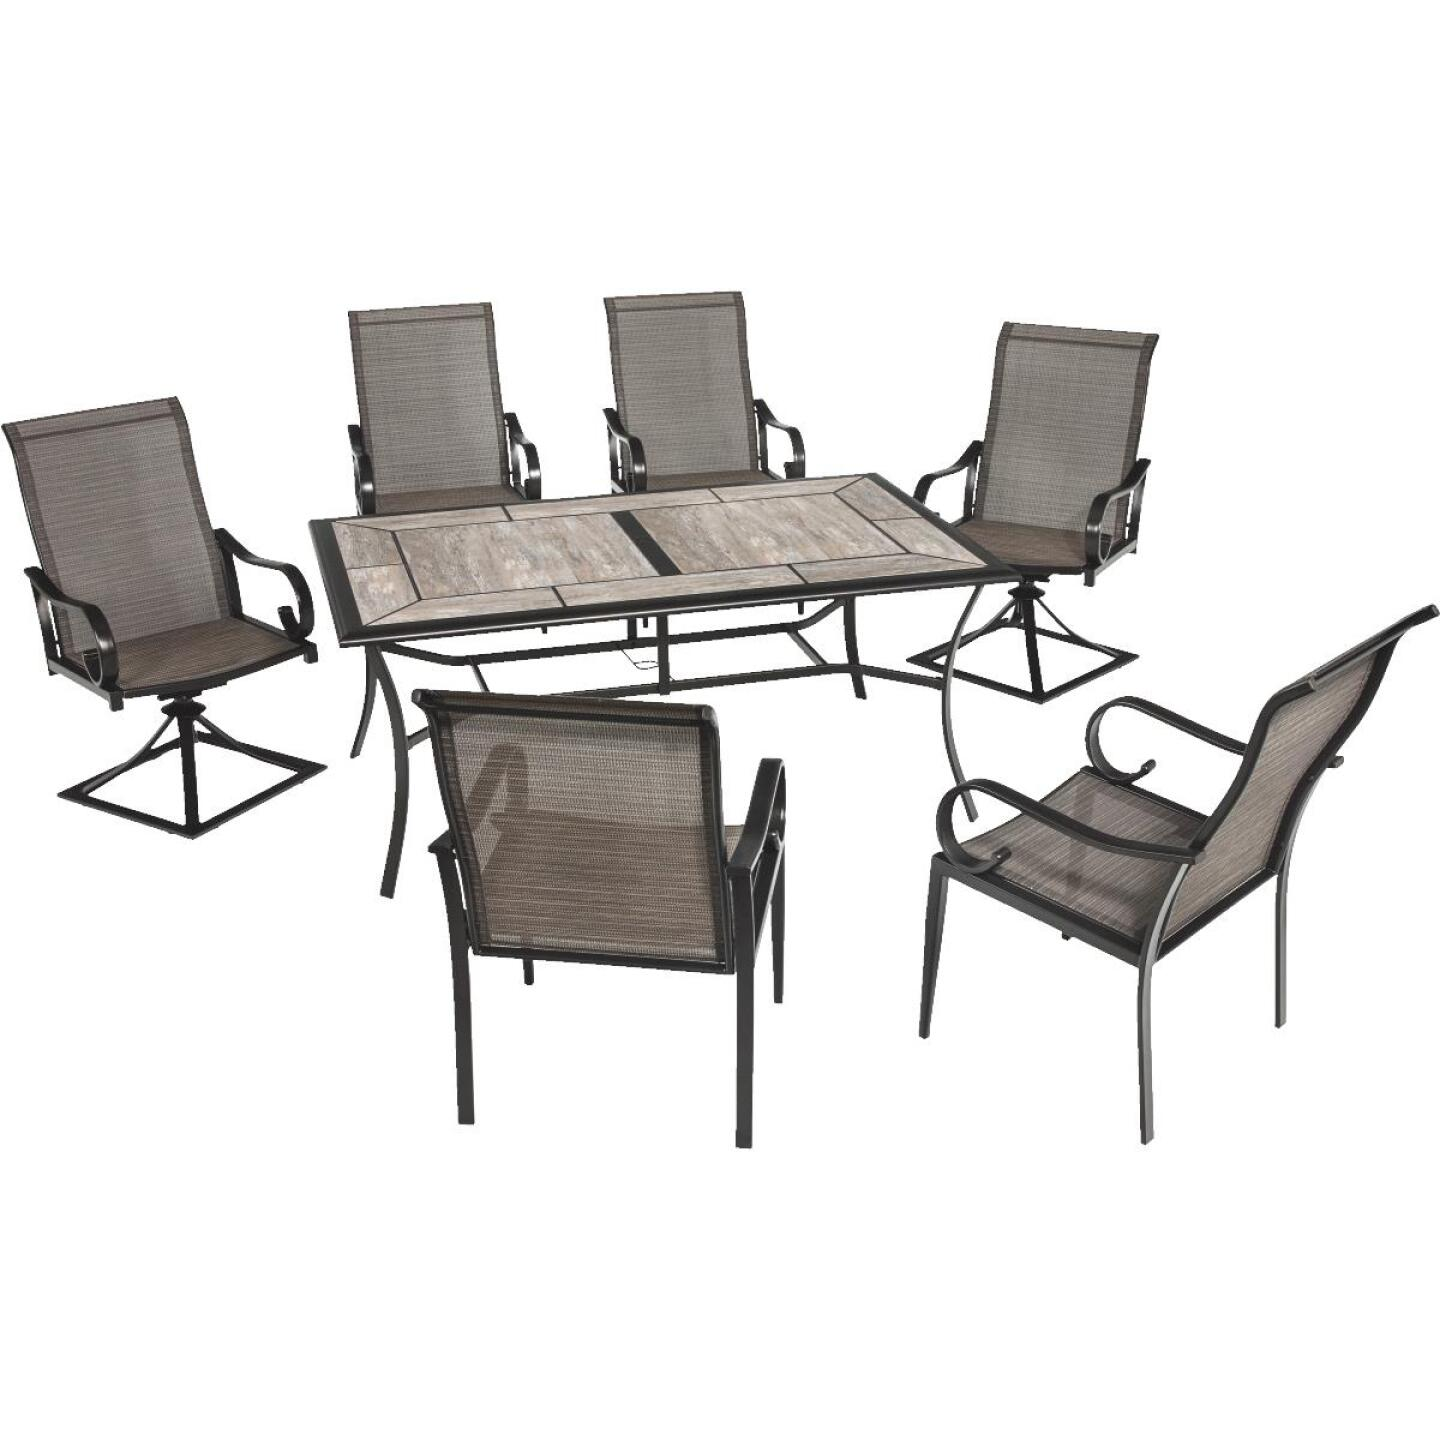 Outdoor Expressions Berkshire 7-Piece Dining Set Image 206